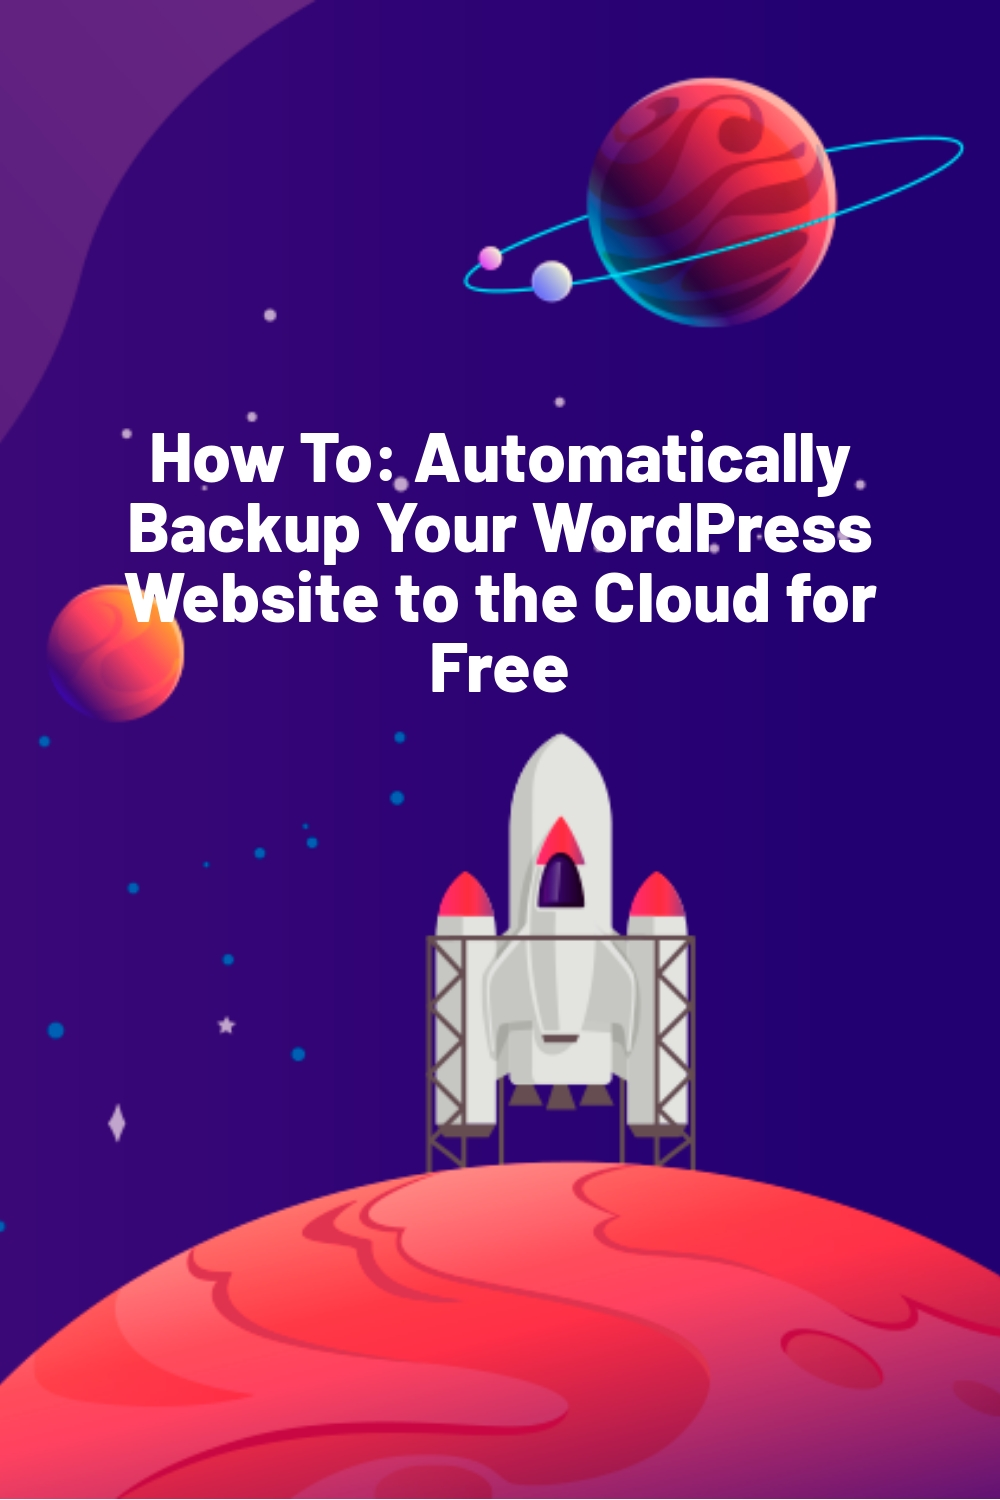 How To: Automatically Backup Your WordPress Website to the Cloud for Free